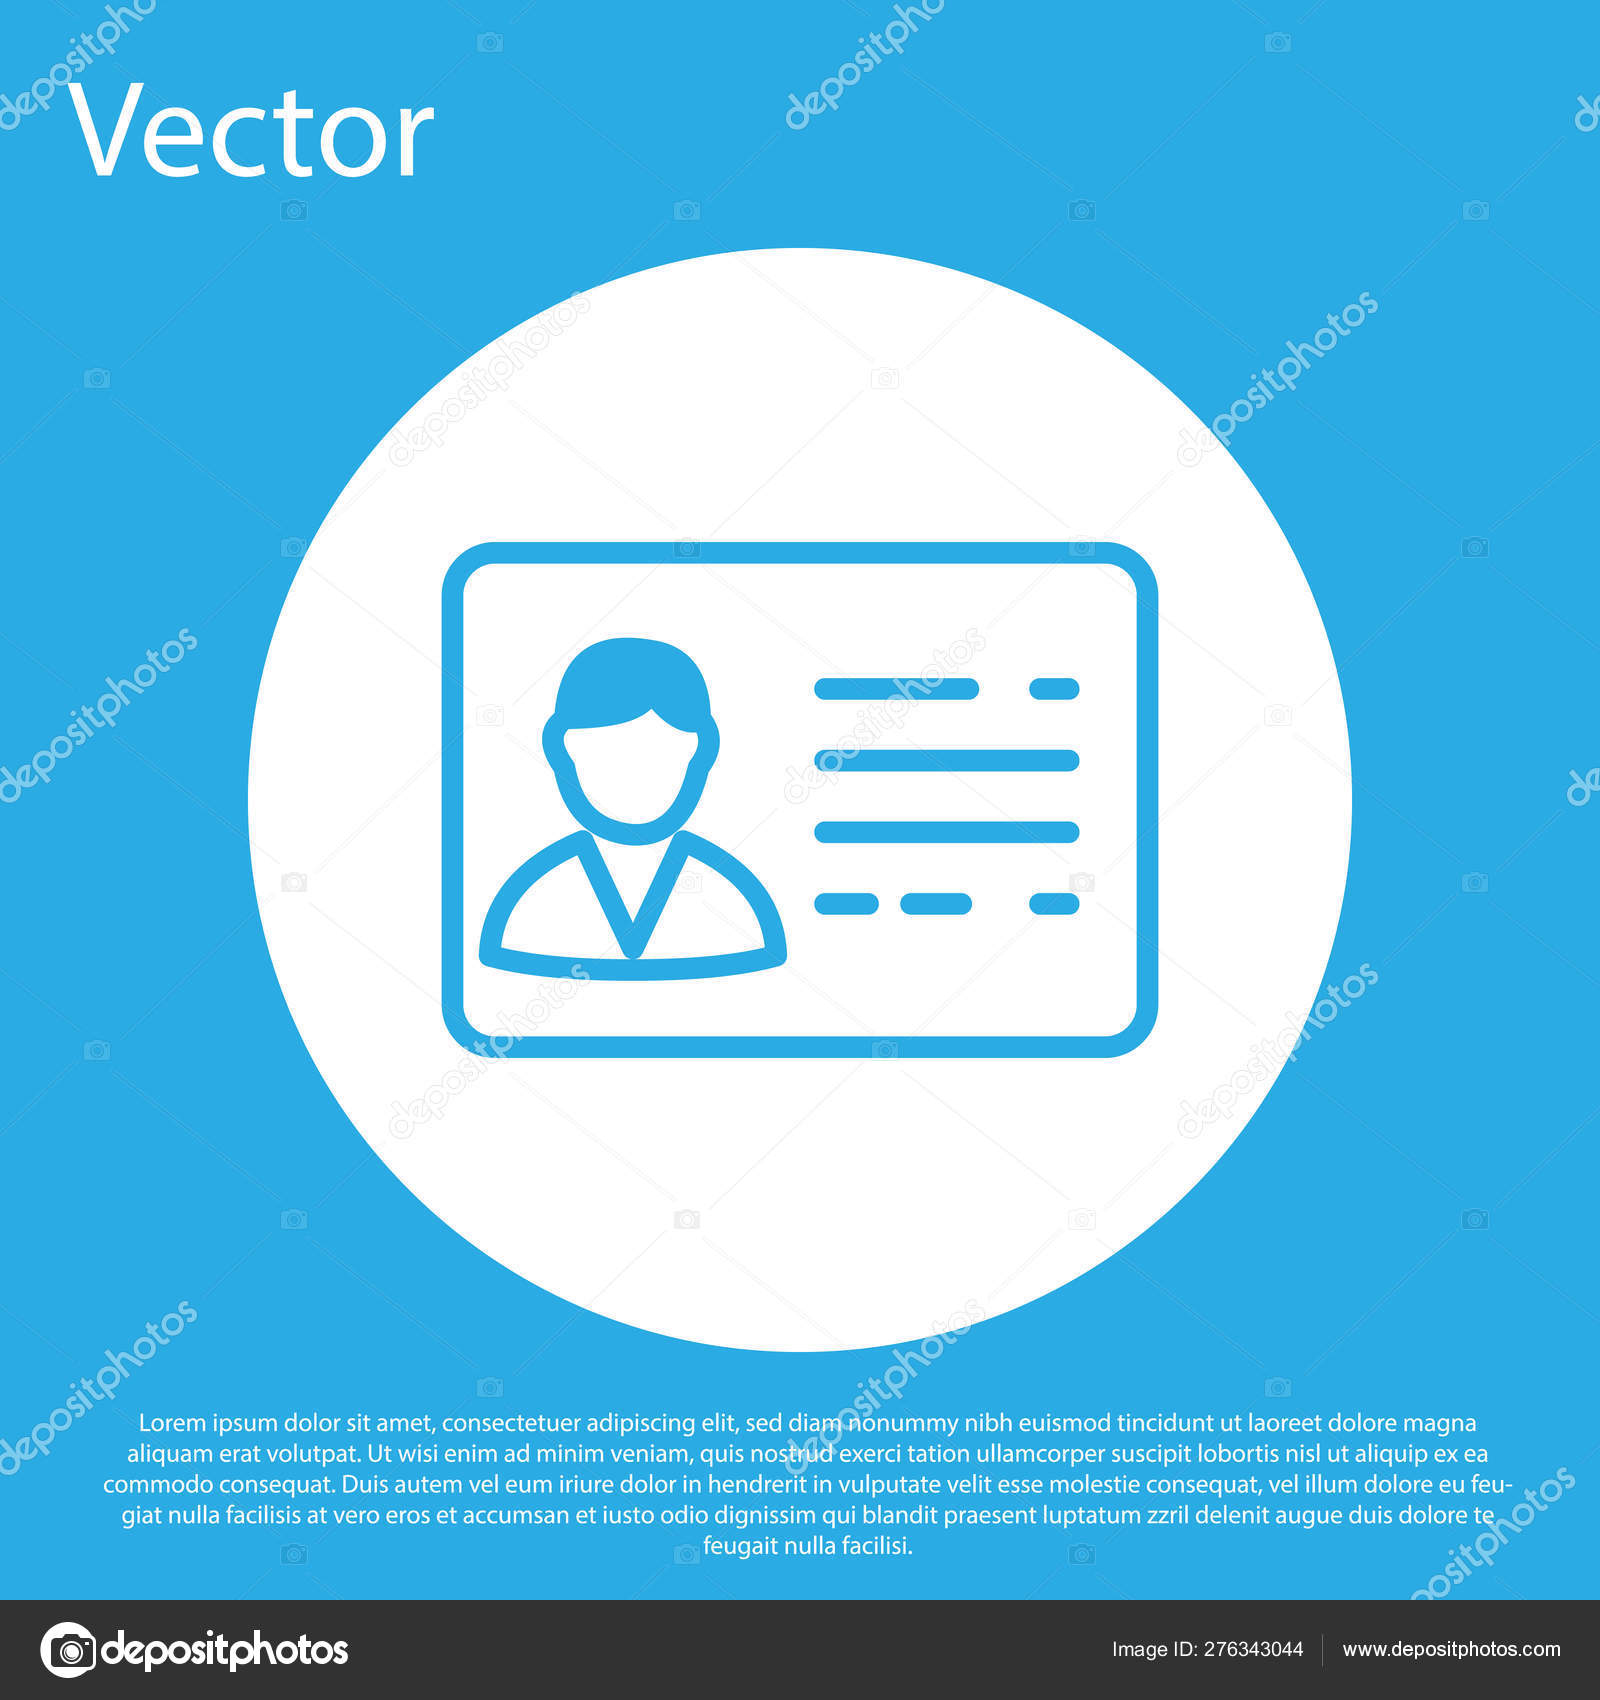 blue identification badge line icon isolated on blue background it can be used for presentation identity of the company advertising white circle button vector illustration stock vector c vectorvalera gmail com 276343044 https depositphotos com 276343044 stock illustration blue identification badge line icon html